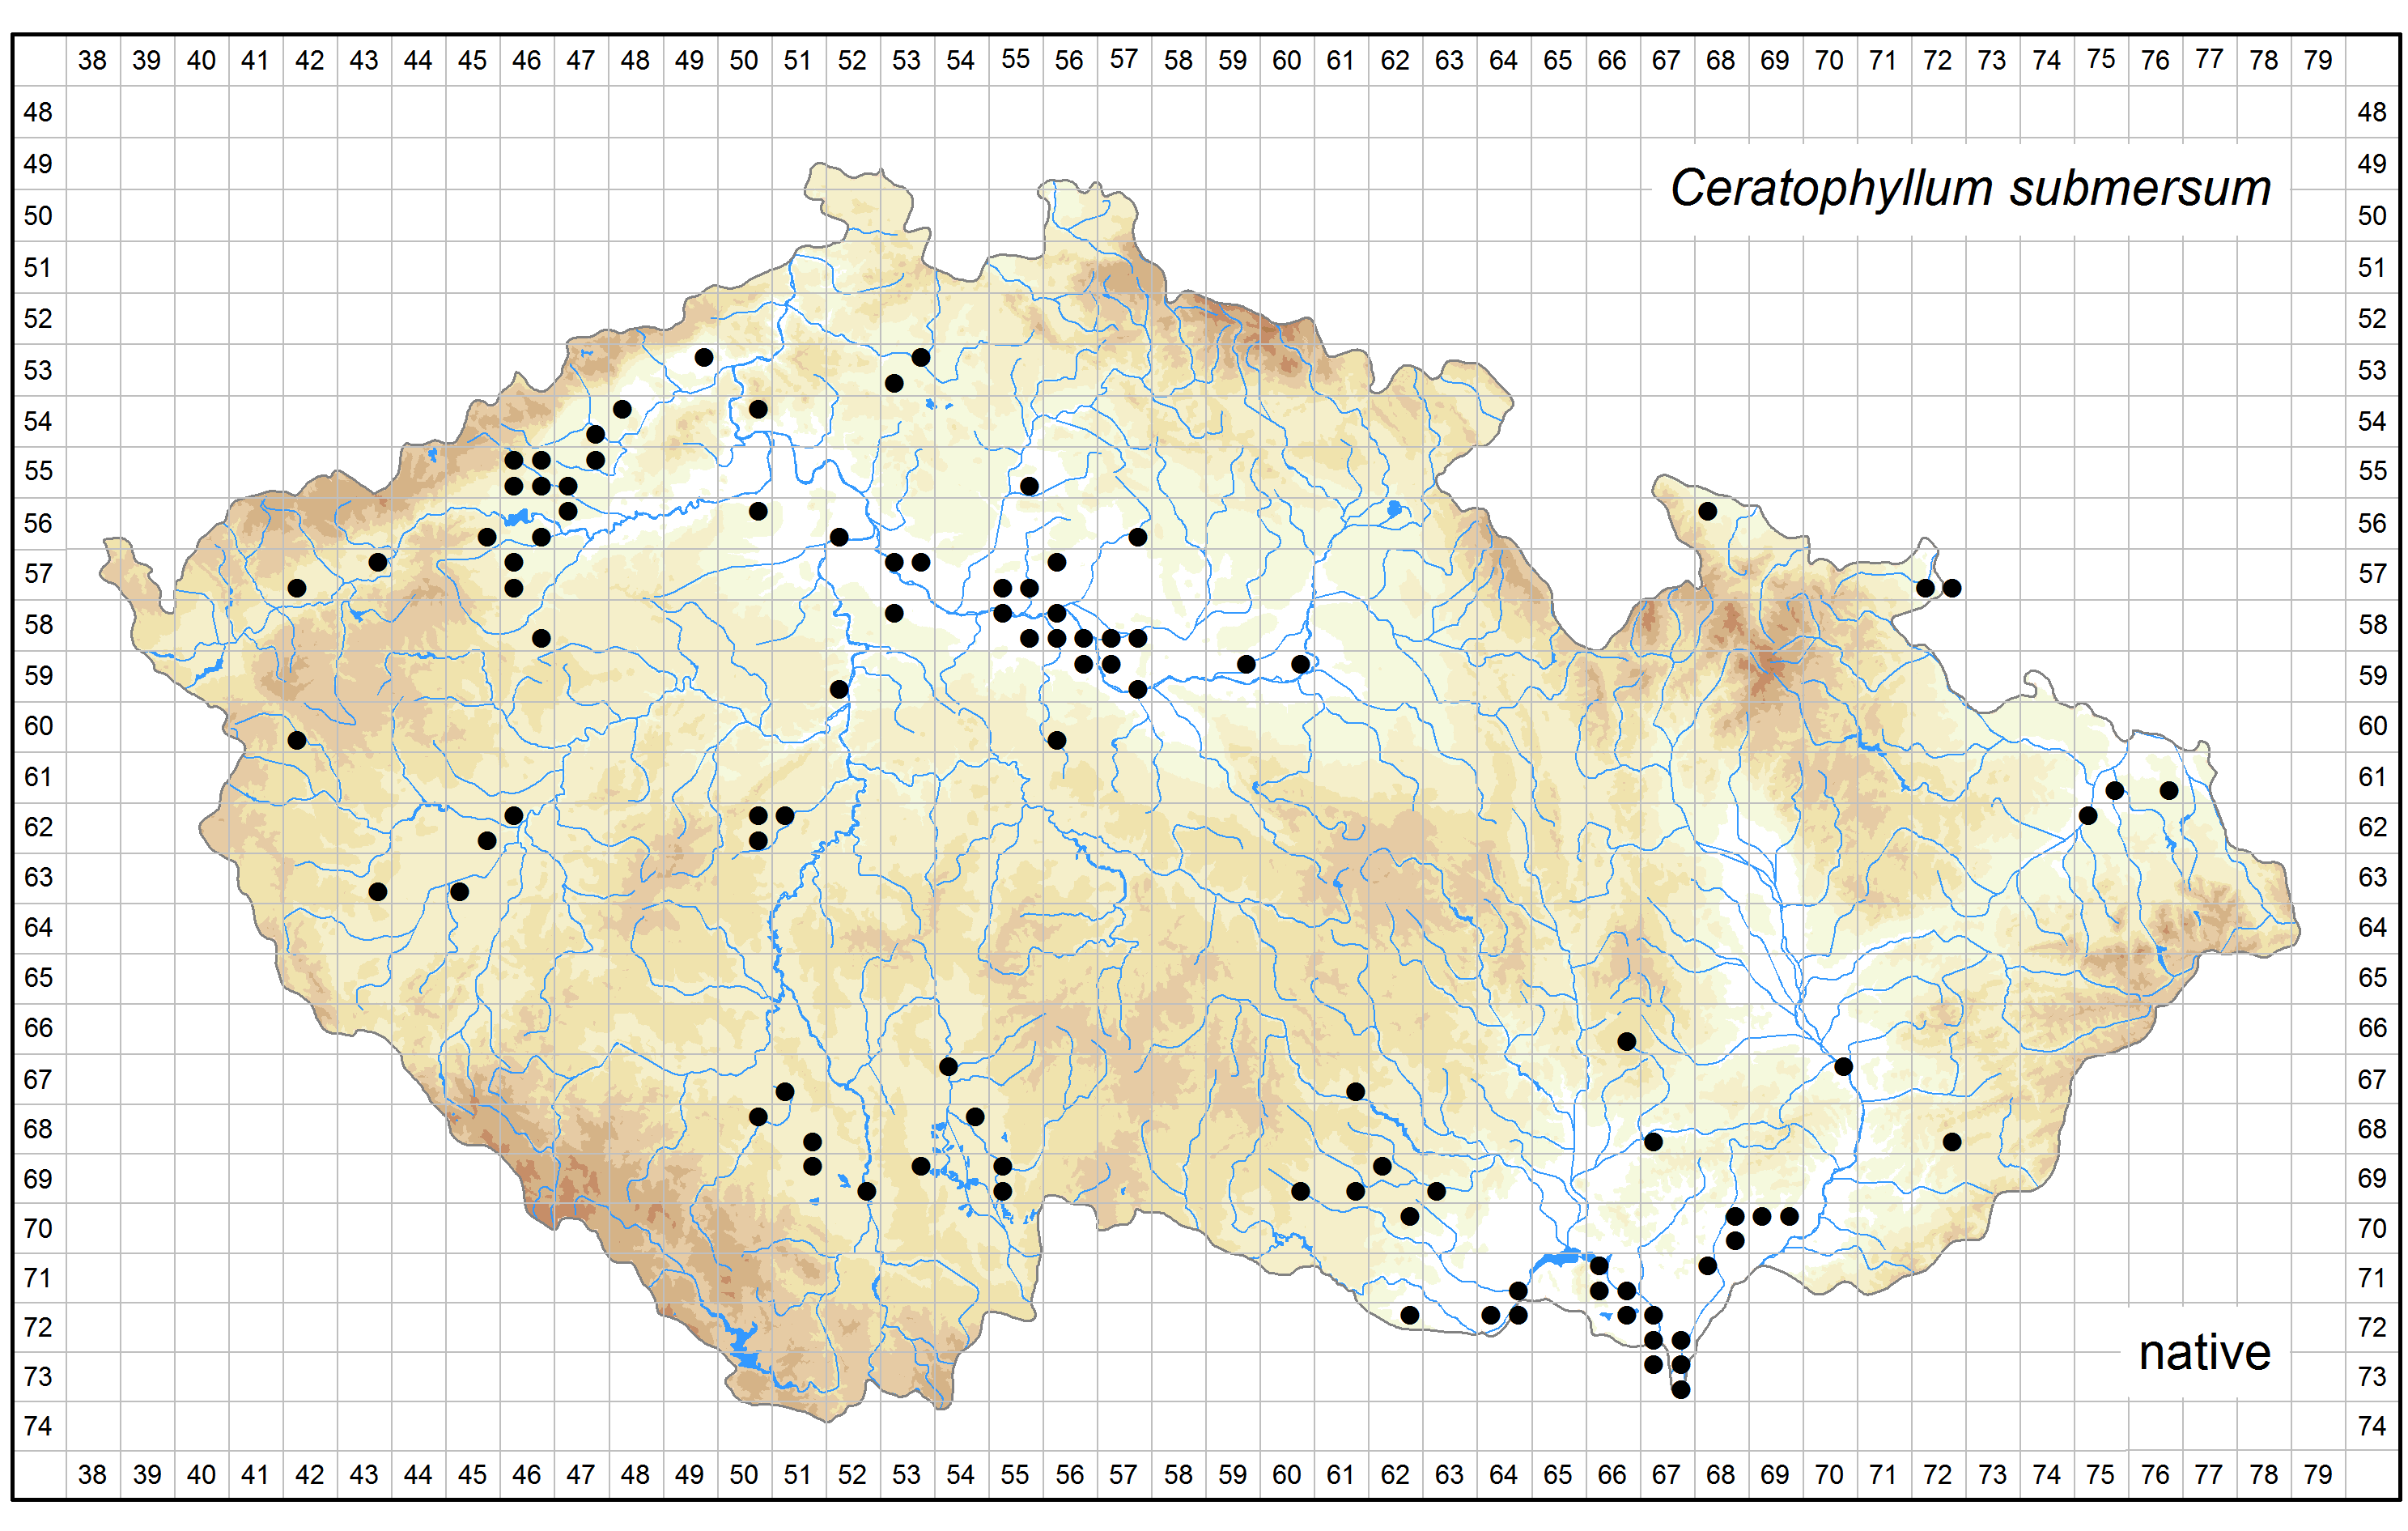 Distribution of Ceratophyllum submersum in the Czech Republic Author of the map: Zdeněk Kaplan, Jan Prančl Map produced on: 07-11-2016 Database records used for producing the distribution map of